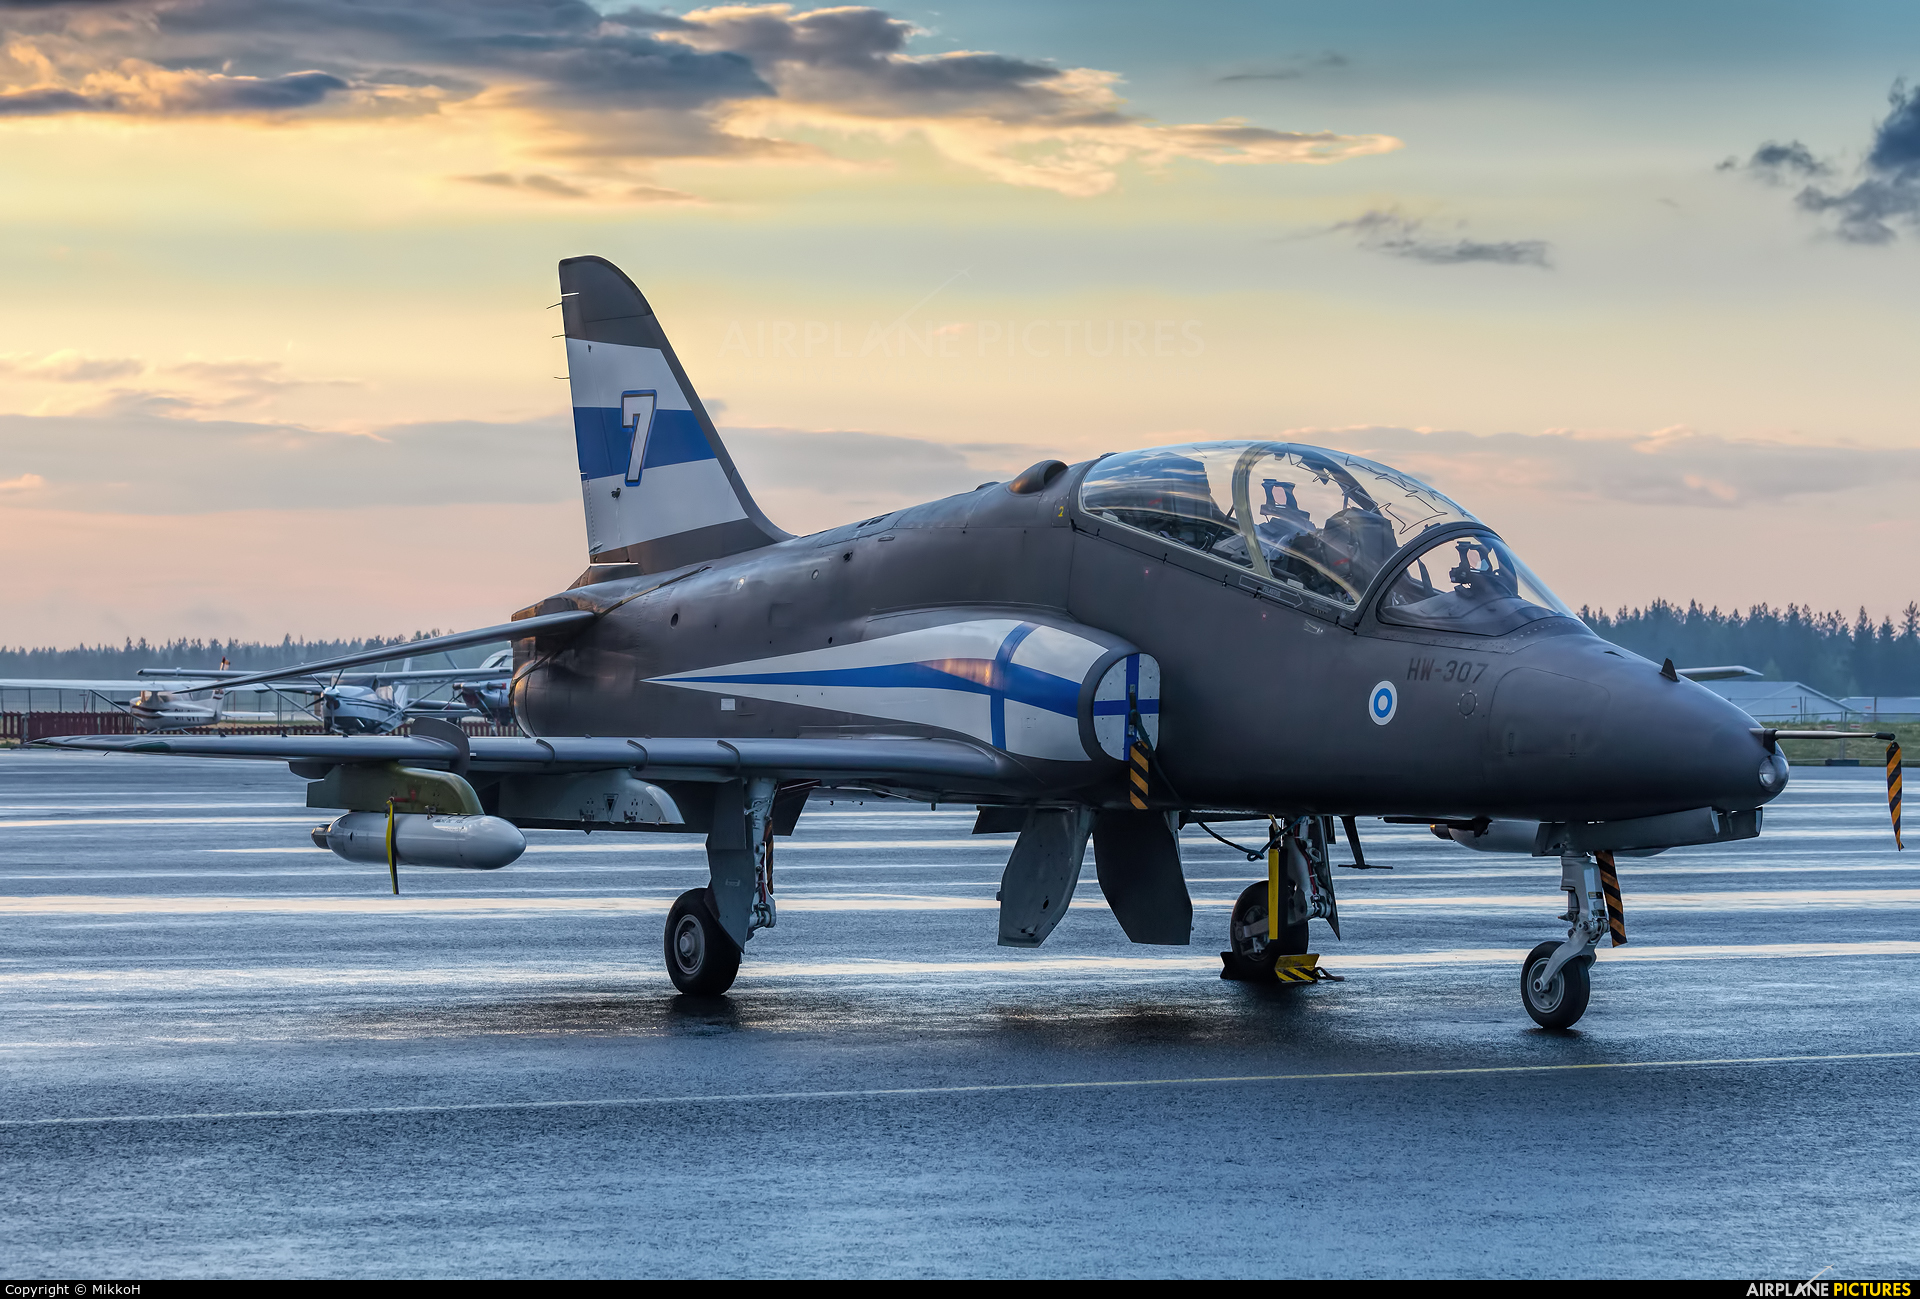 Finland - Air Force: Midnight Hawks HW-307 aircraft at Seinäjoki Airport